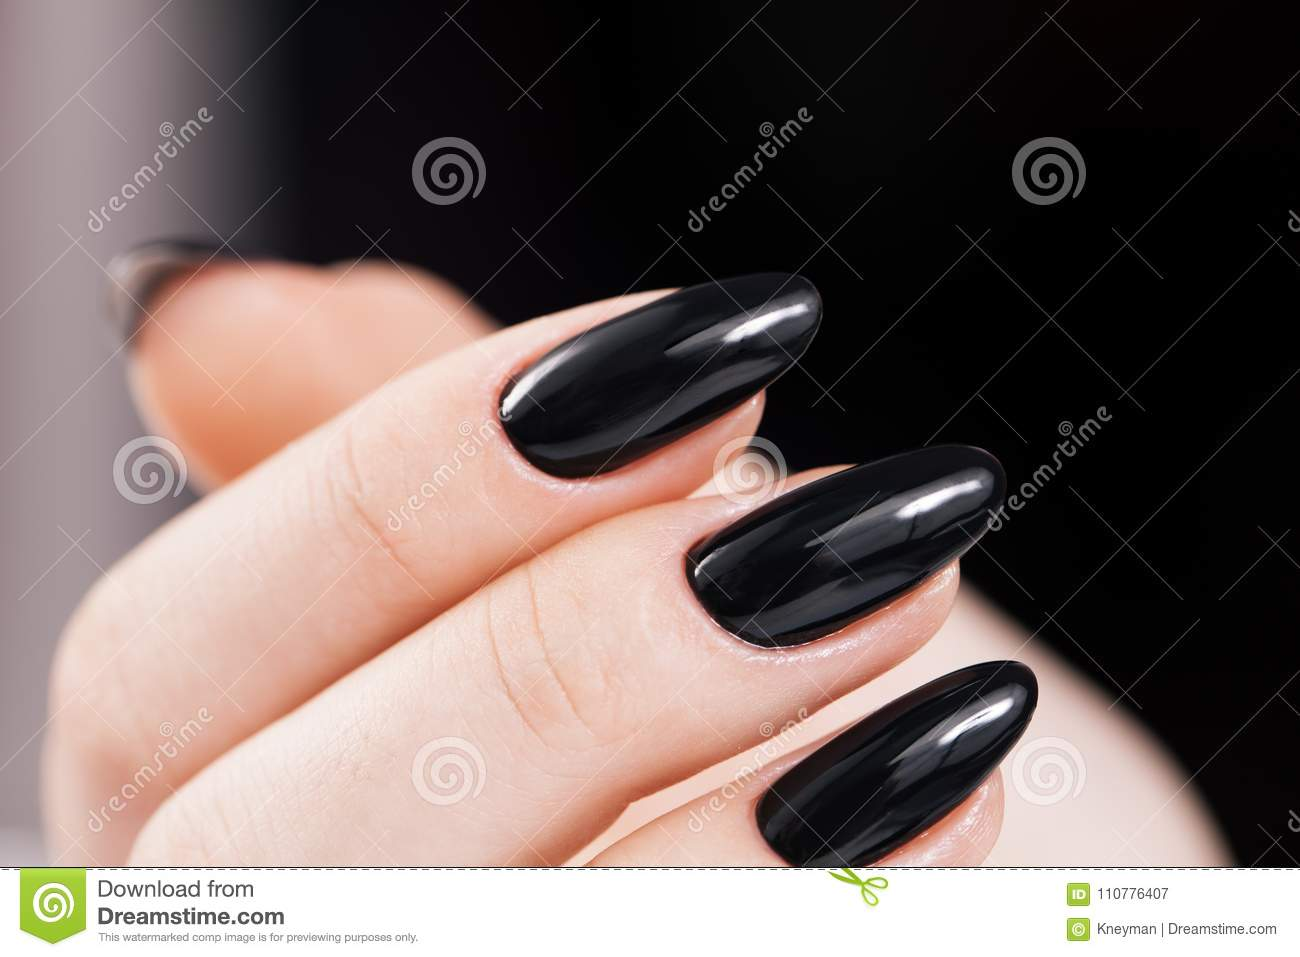 Black Nails Design Close-up. Stock Image - Image of gloss, manicured ...